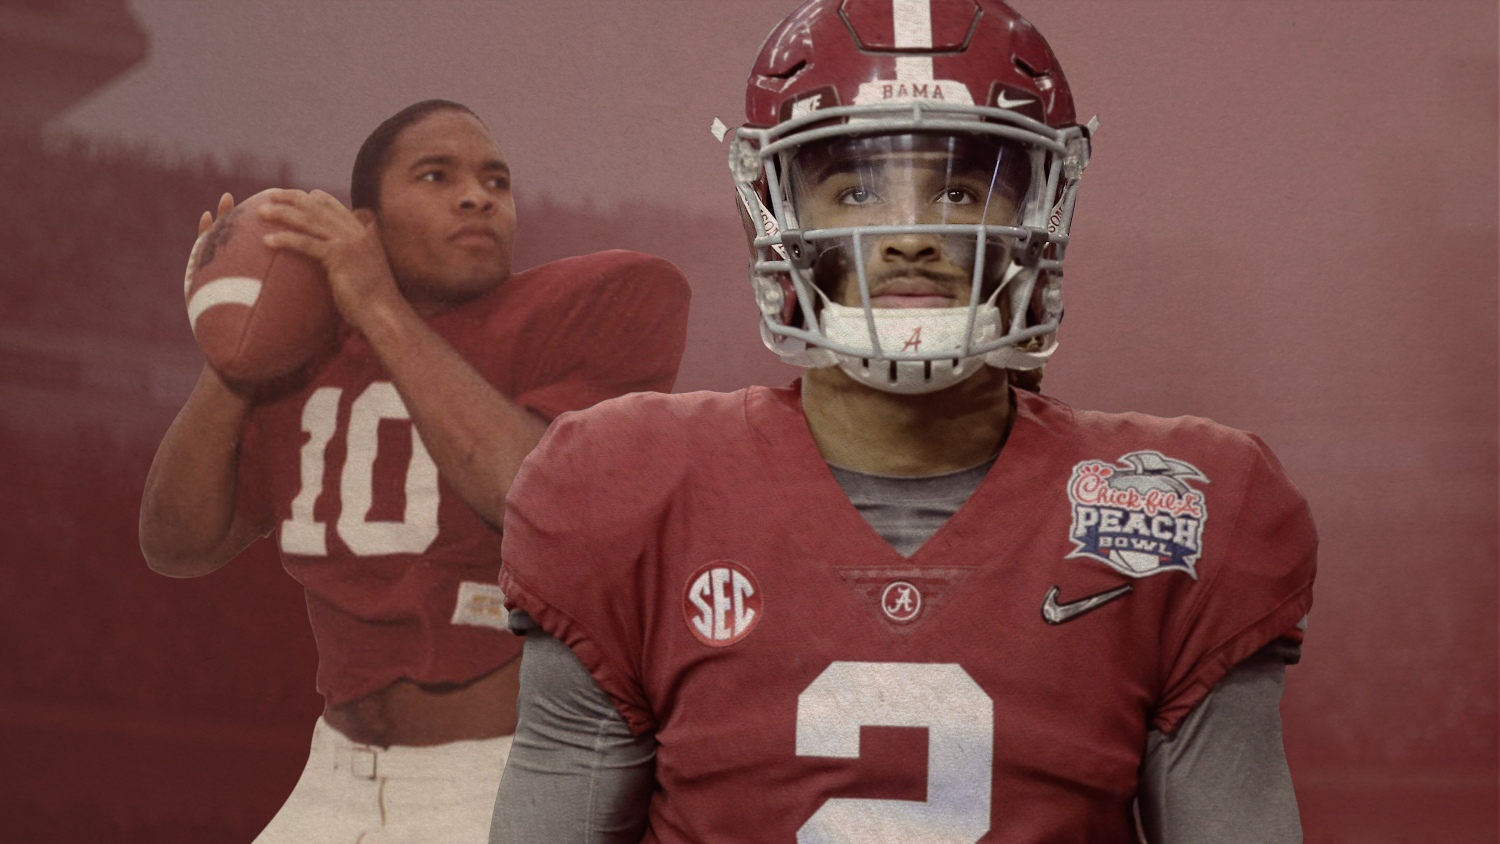 alabama quarterback dating miss alabama index fossils are used in the type of dating called